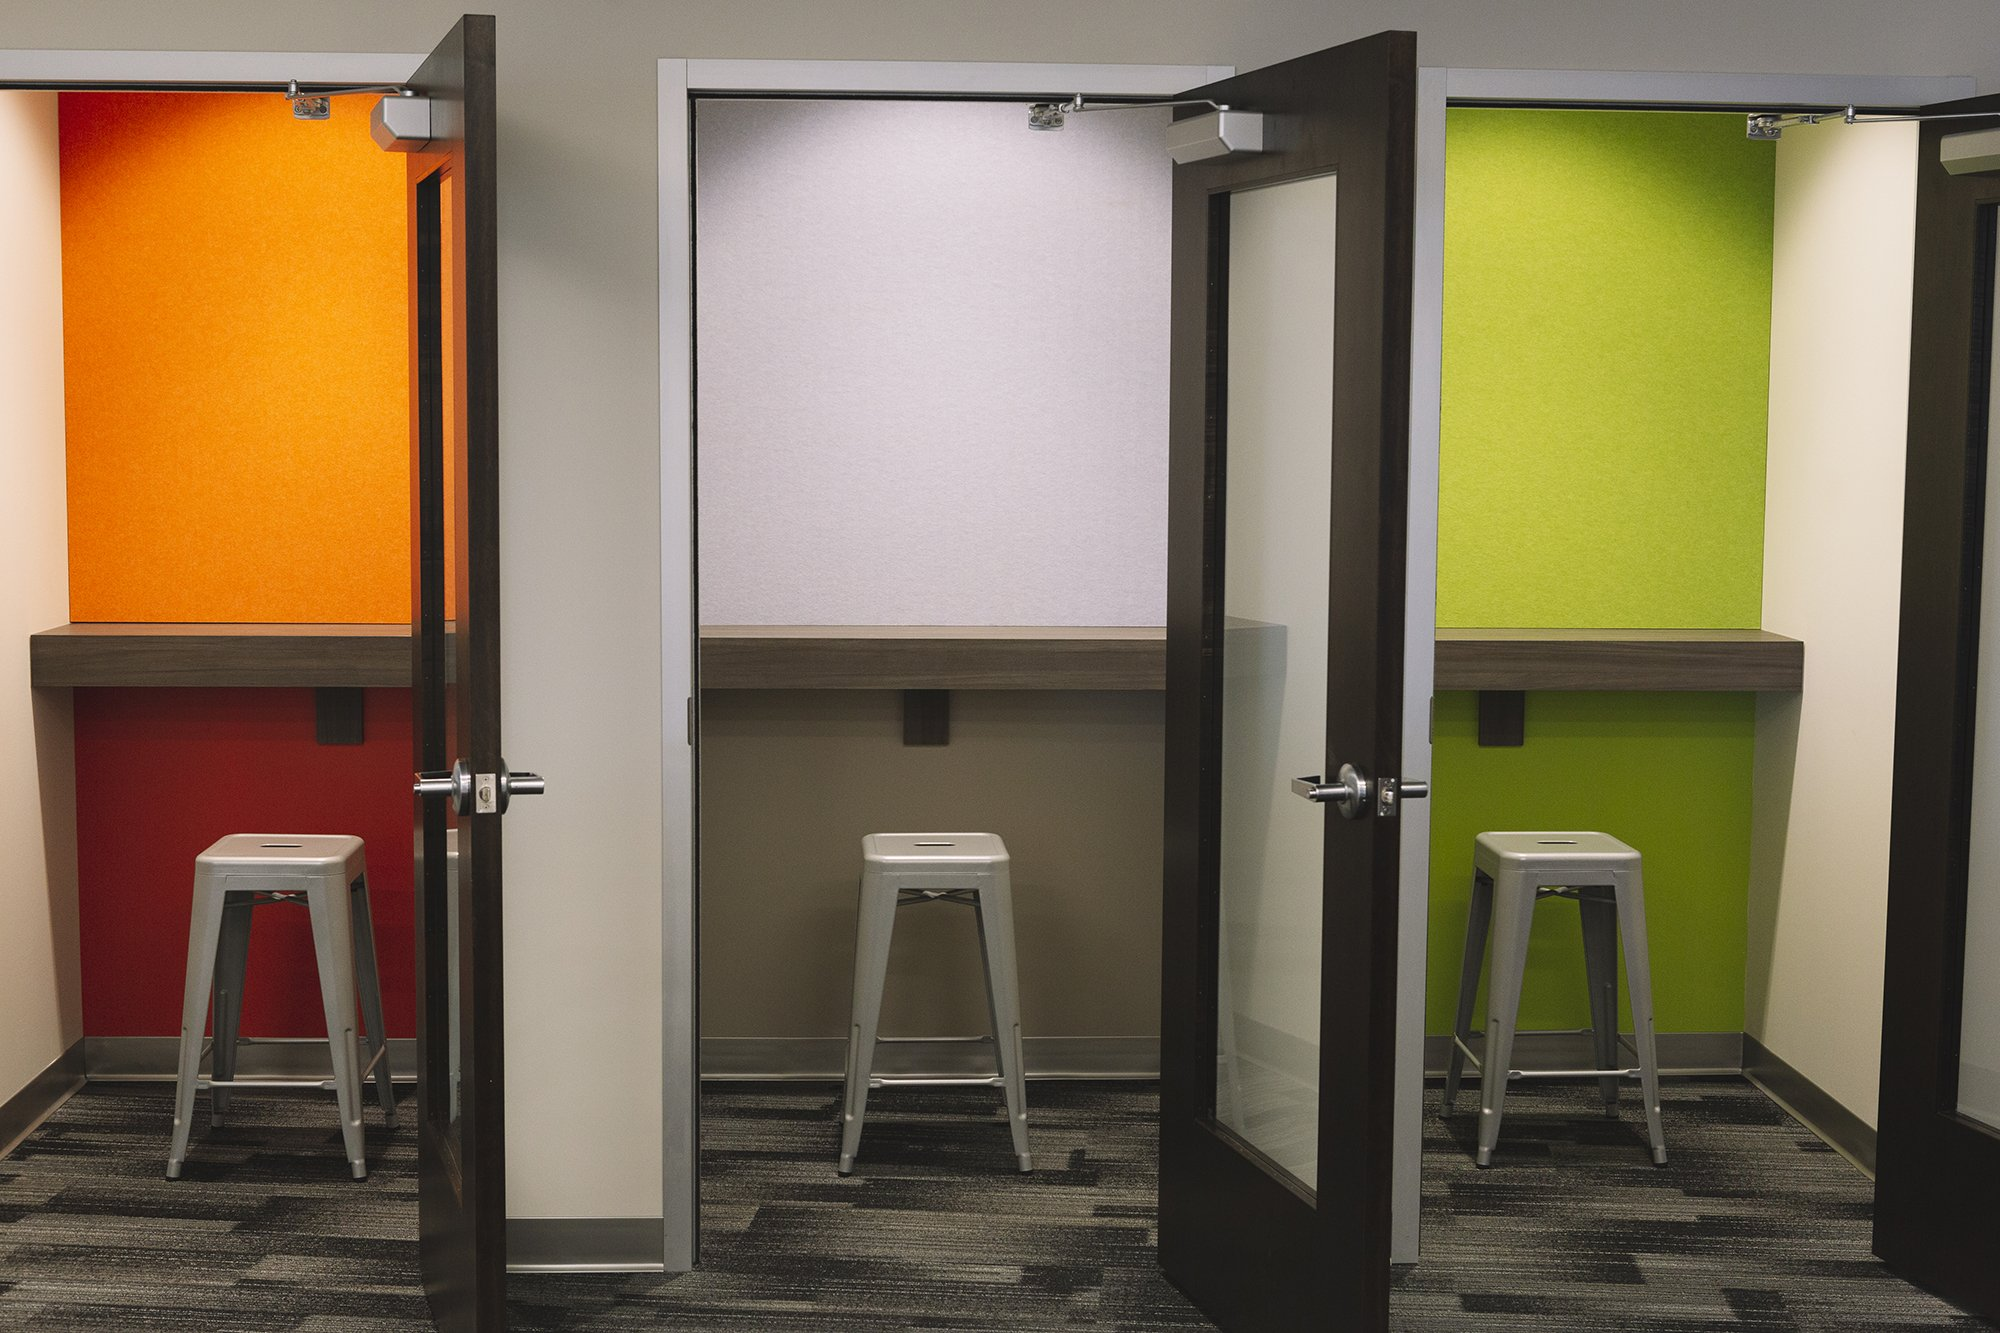 lauth-group-vibenomics-office-design-brand-identity-indianapolis-indiana-8